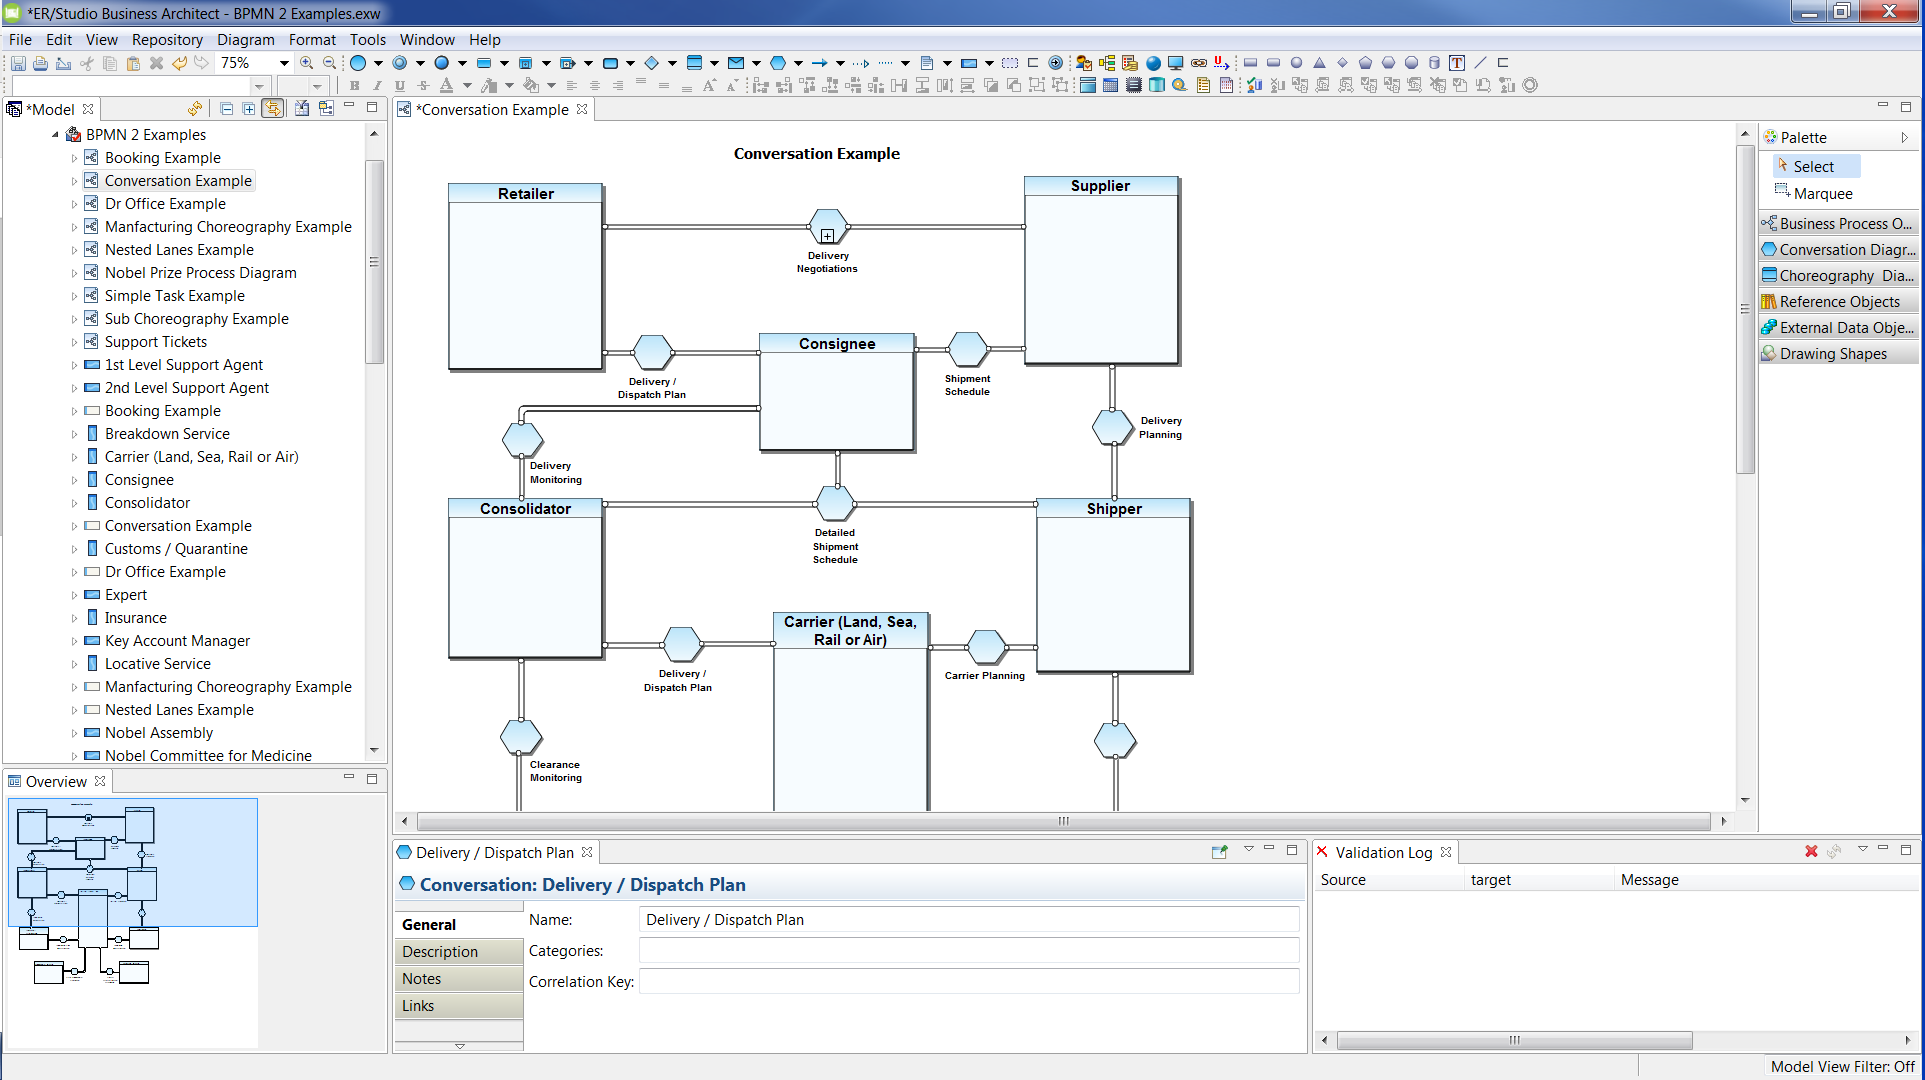 Erstudio business architect product tour idera identify key stakeholders the conversation diagram is a high level representation of the collaboration diagram show various parts of the business process ccuart Gallery